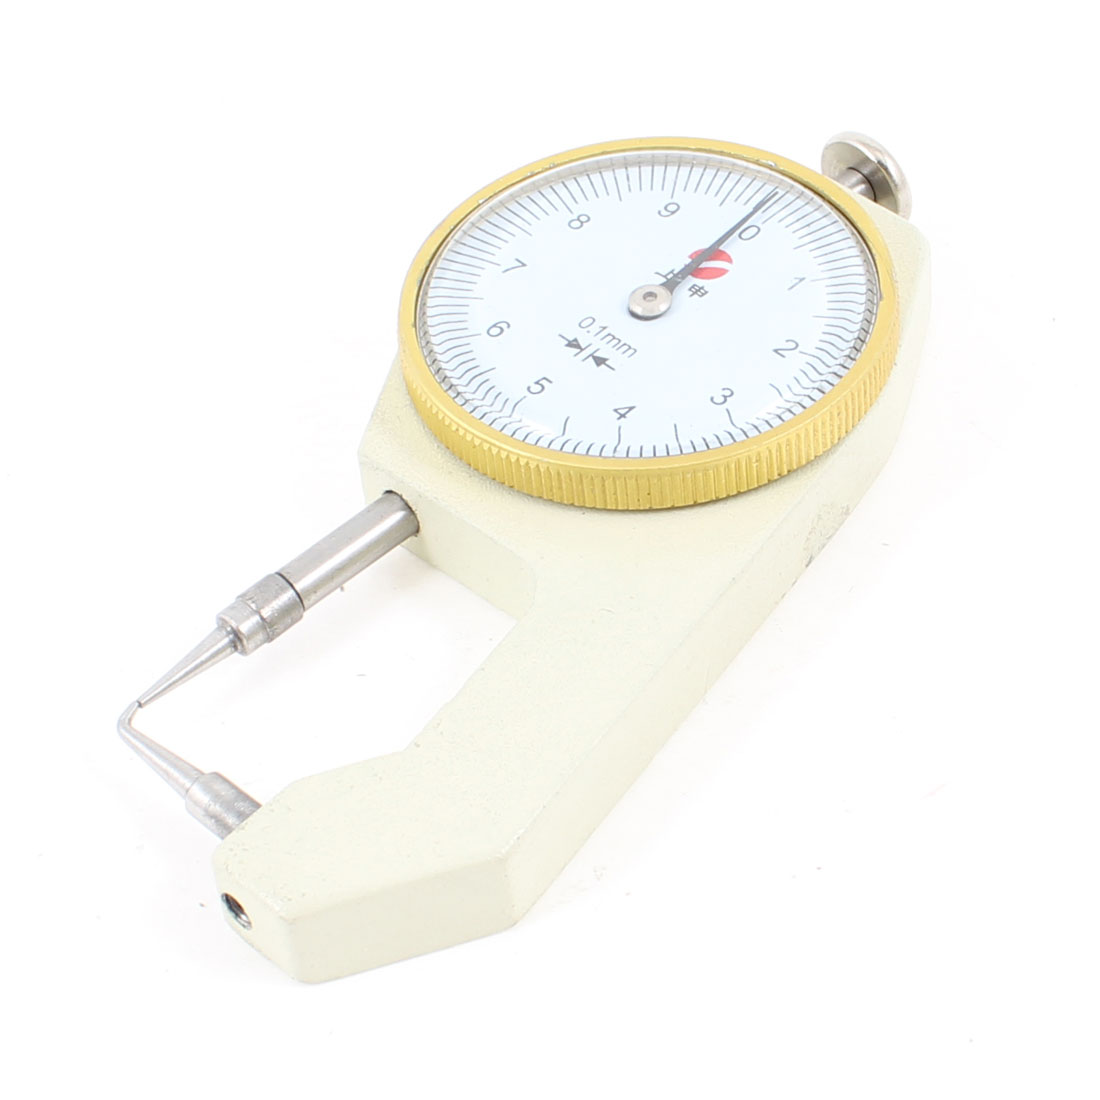 Dial Indicator Pocket Thickness Gauge Gage 0 to 10mm Silver Tone Beige